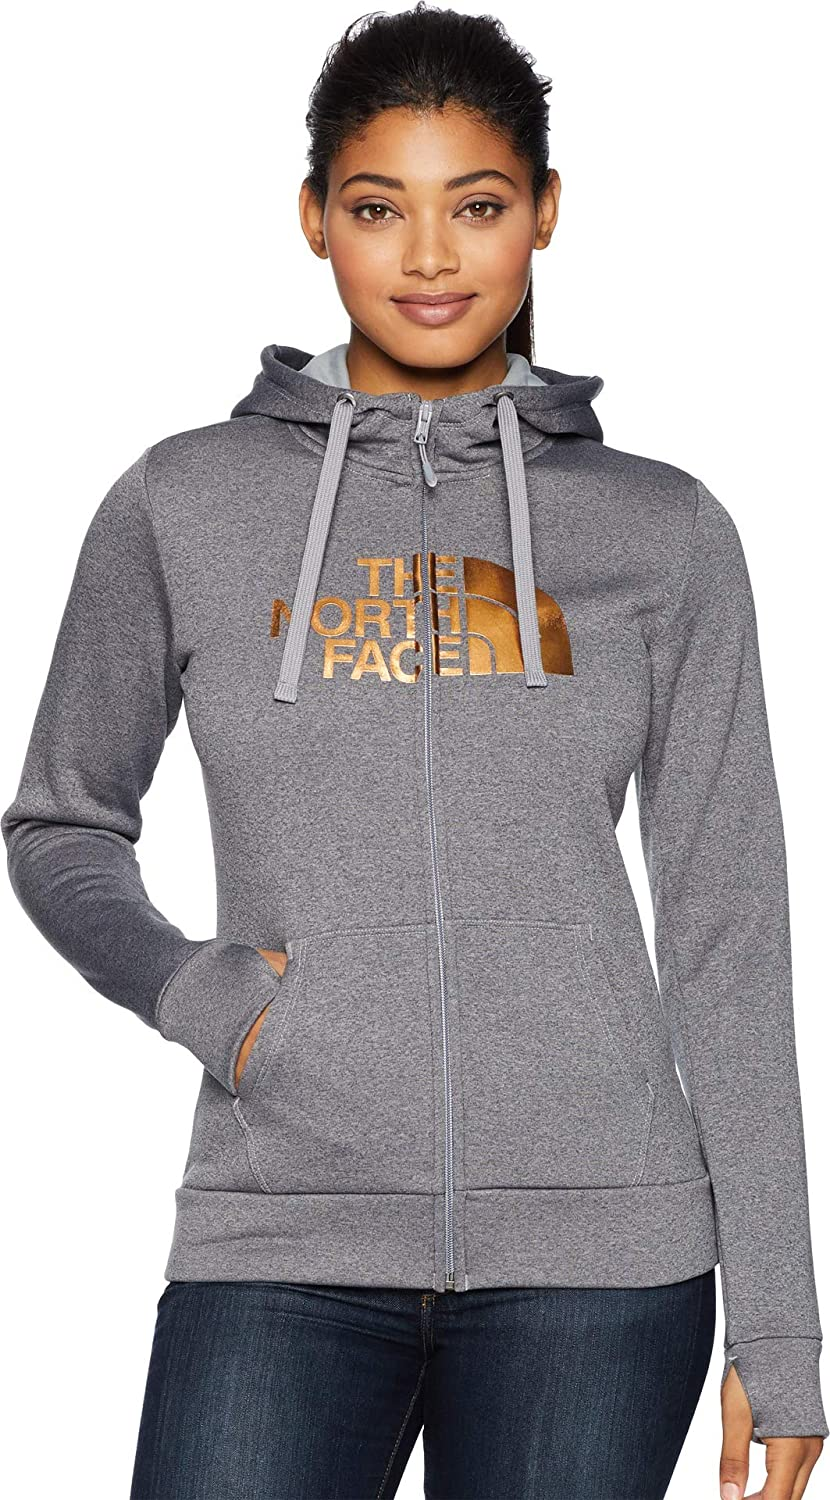 The North Face Women's Fave Half Dome Full Zip